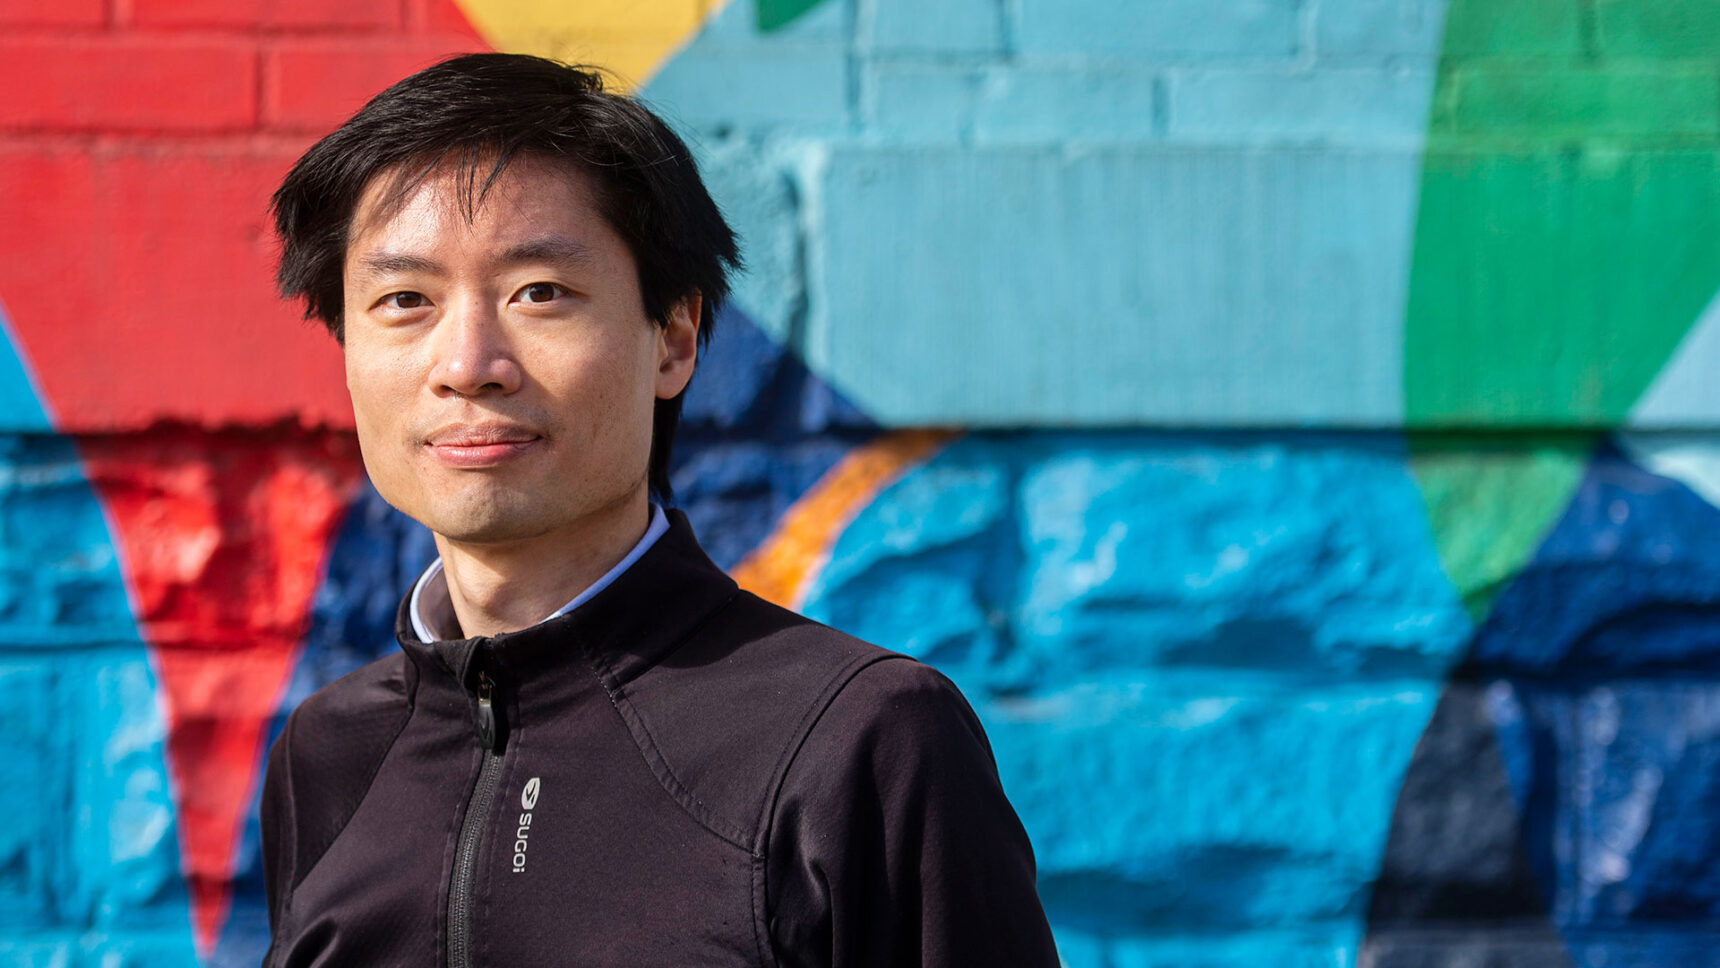 Po-Shen Loh discusses his approach to coaching the United States International Mathematical Olympiad team and reveals what he believes to be the major problem with math education.